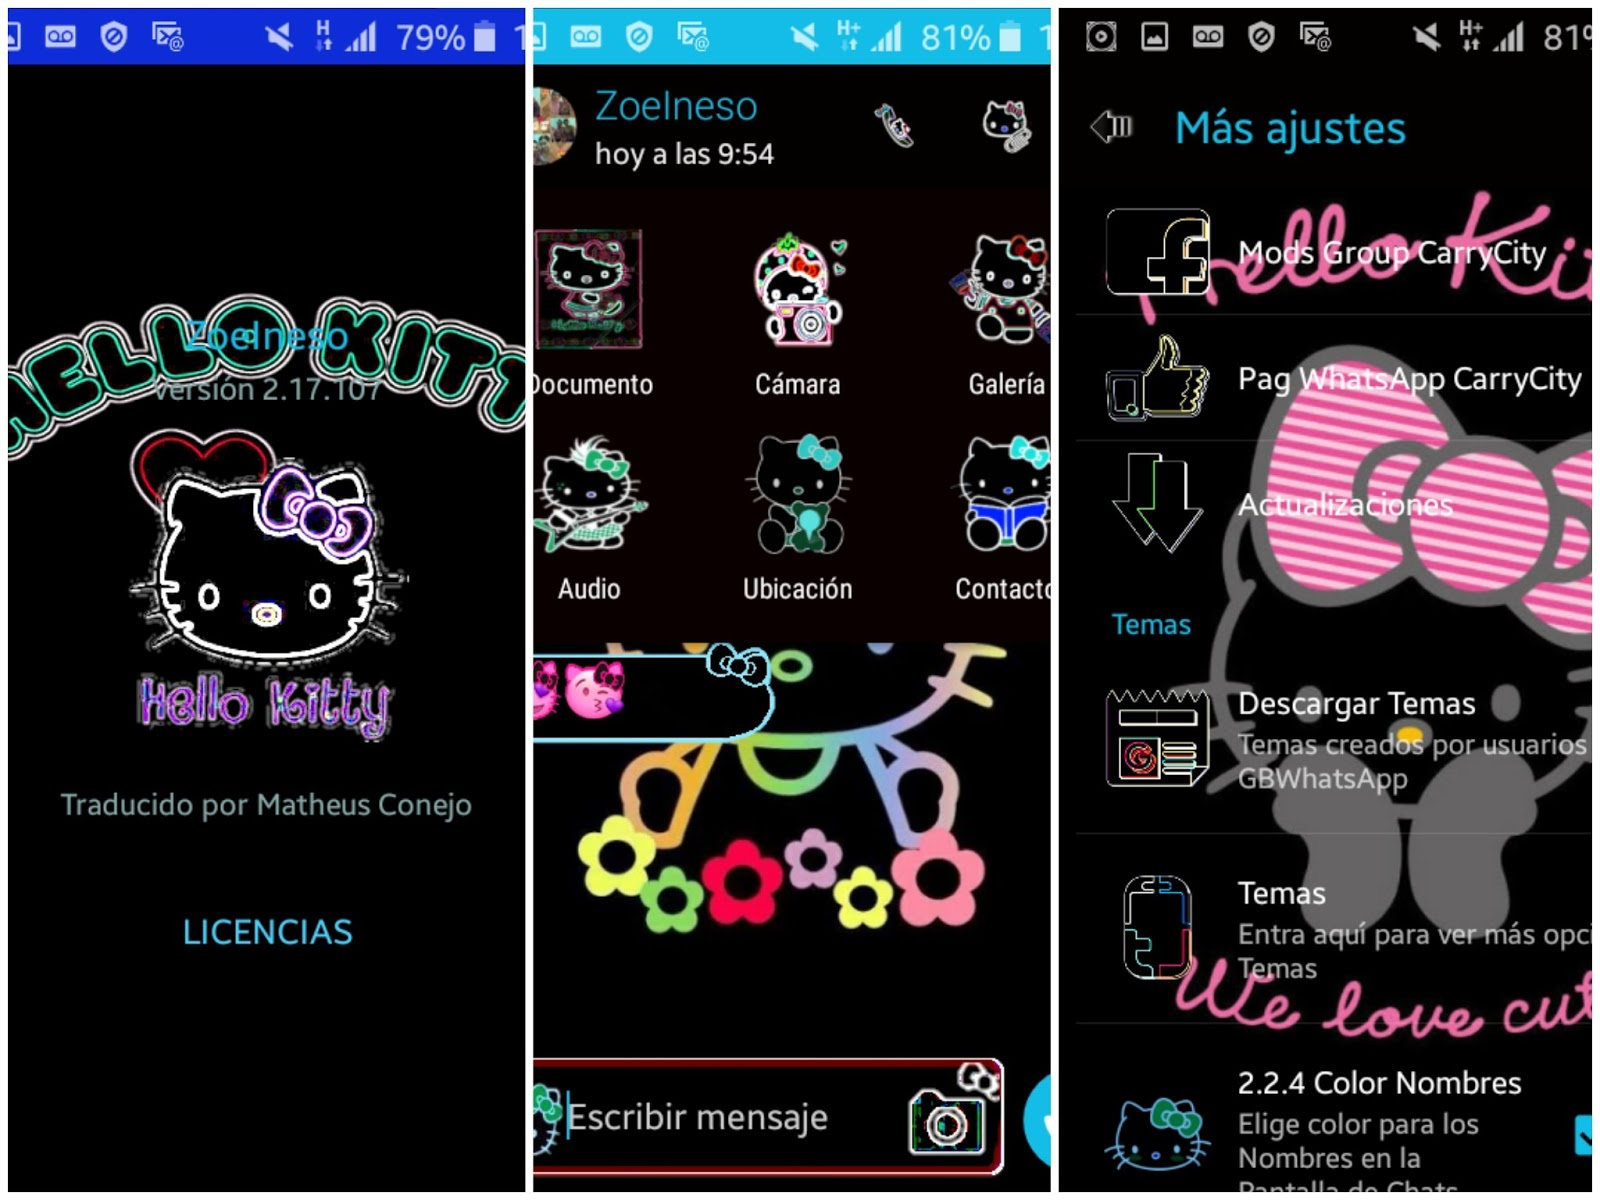 GBWhatsApp v5 50 Hello Kitty Edition With Meow Sound latest